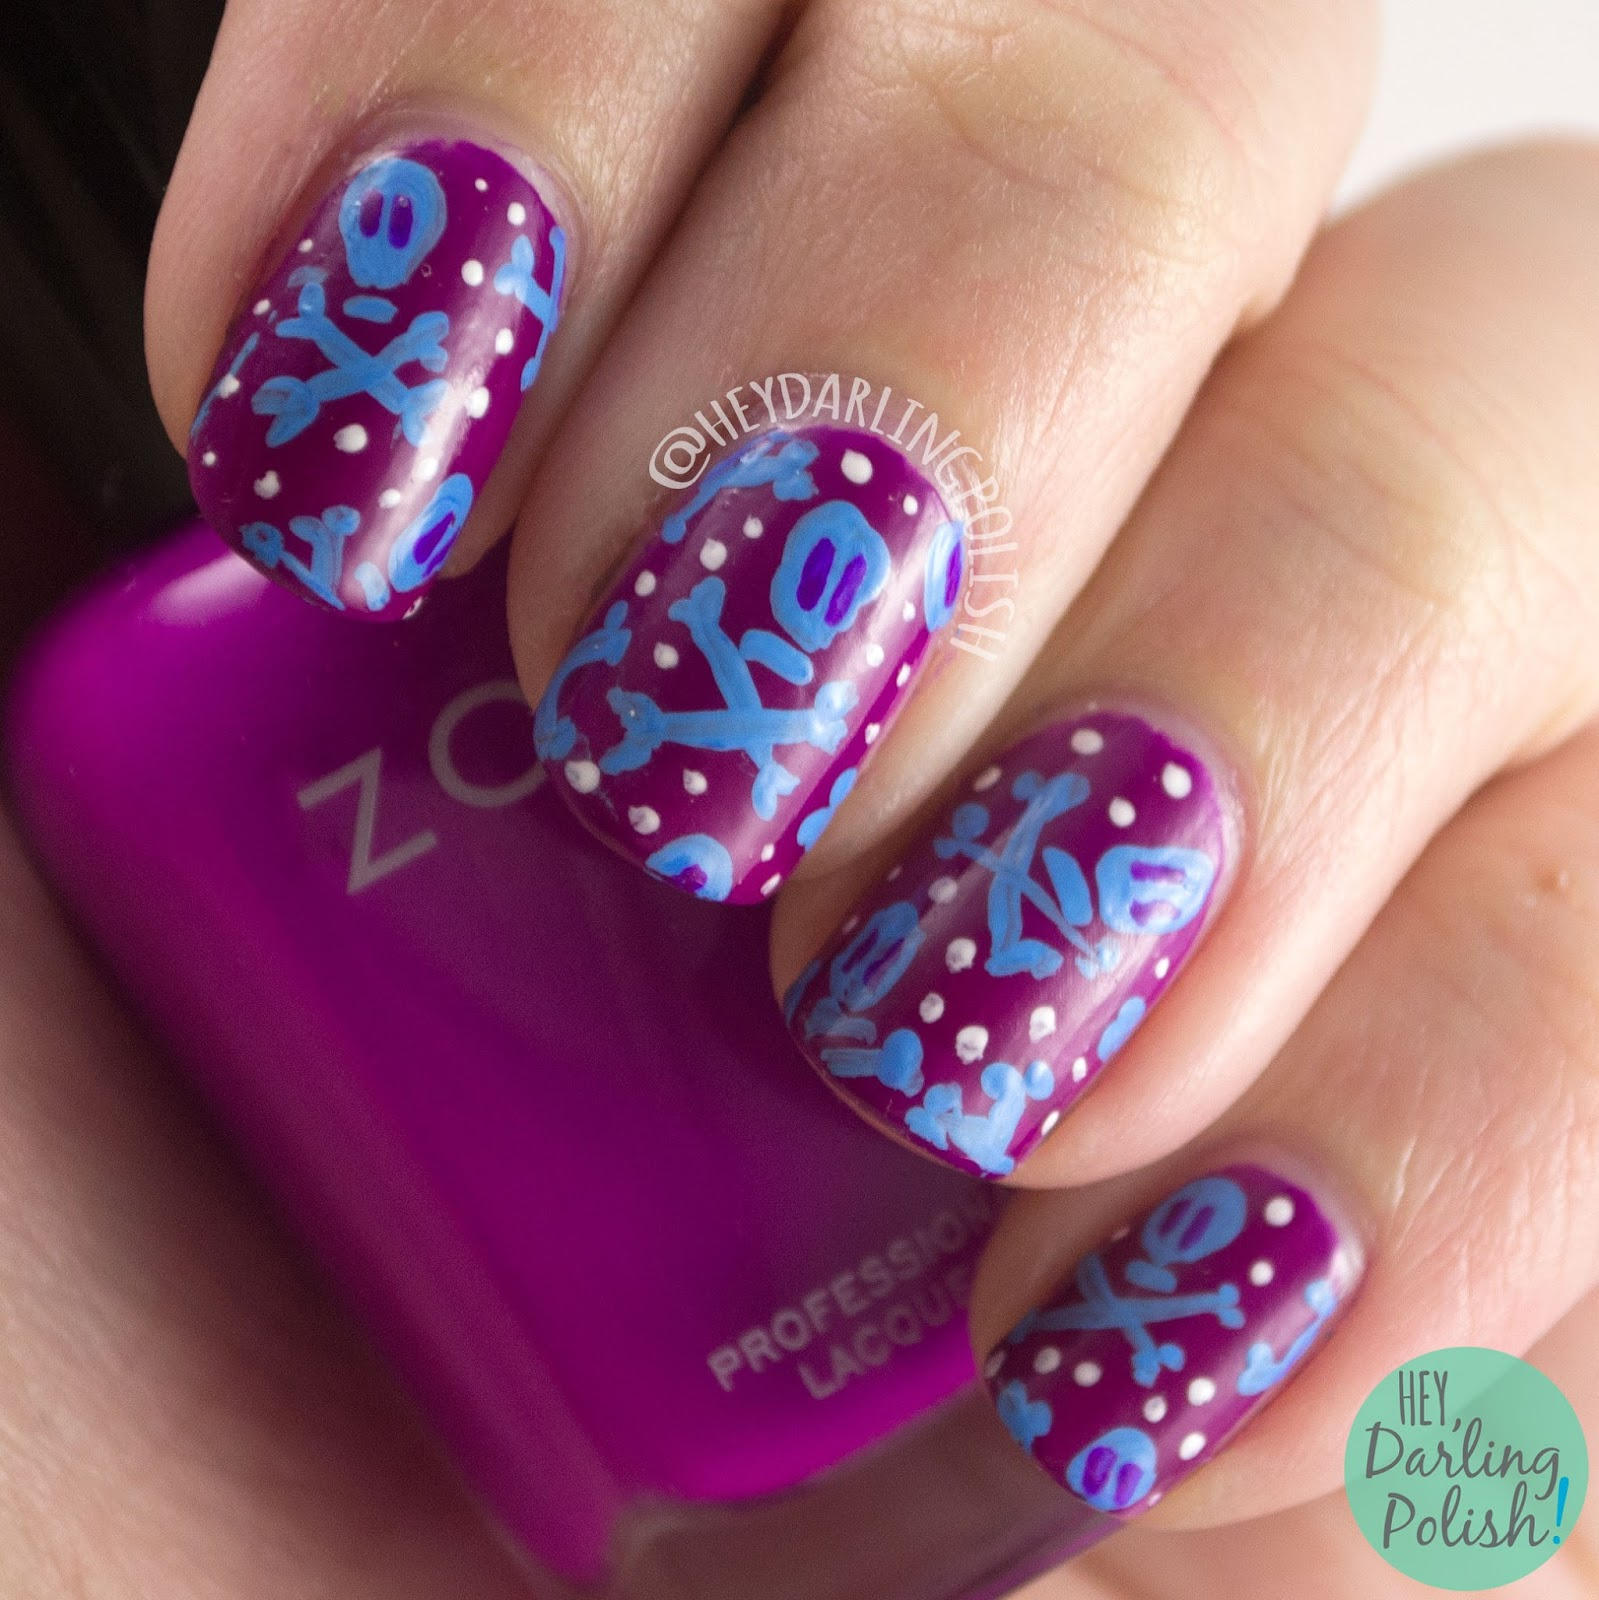 nails, nail art, nail polish, skulls, hey darling polish, purple, blue, bright, nail linkup